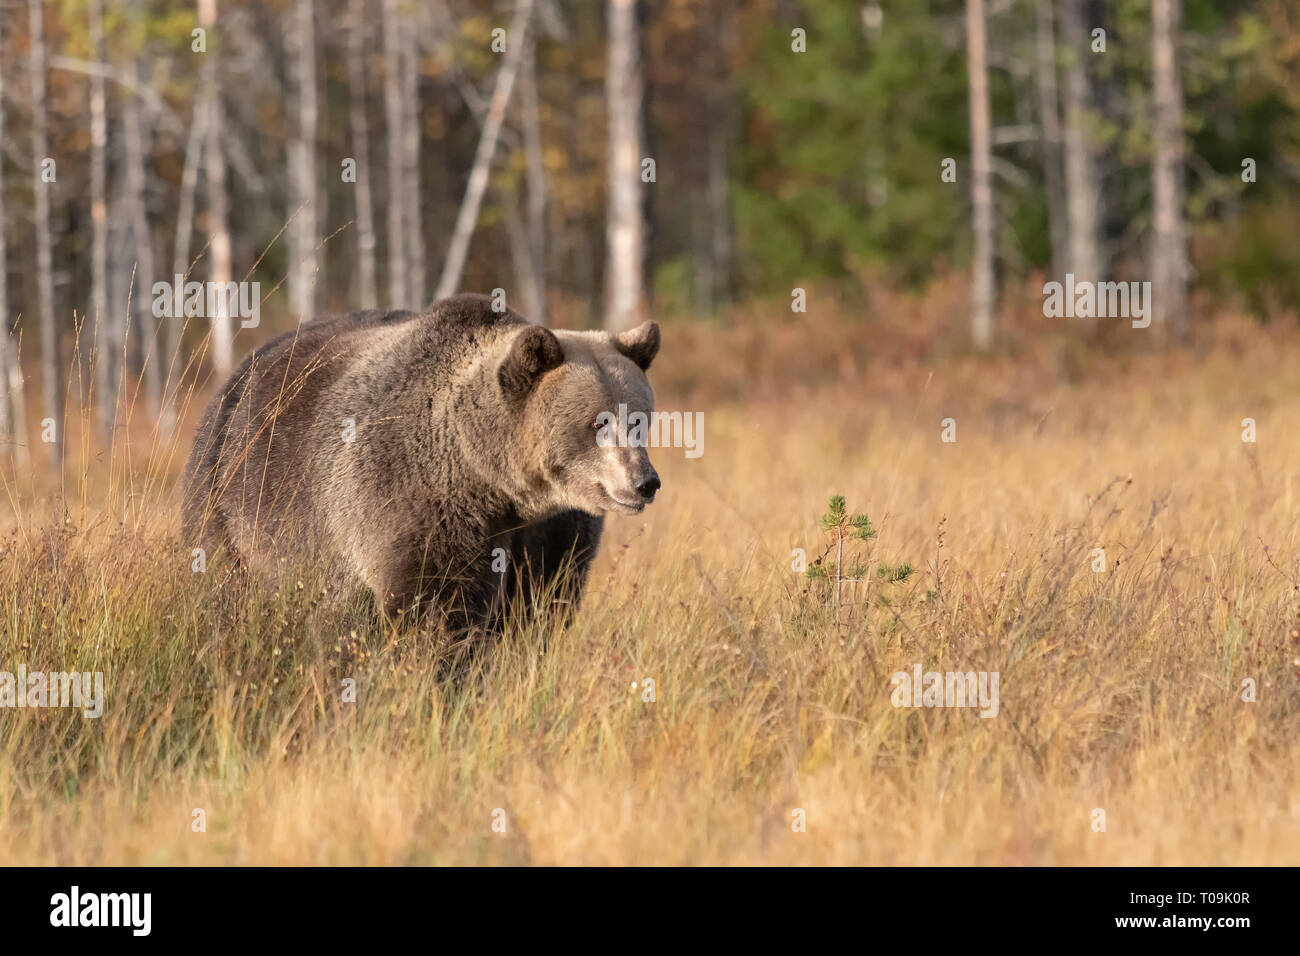 Eurasian Brown Bear - Thoughtfull - Stock Image